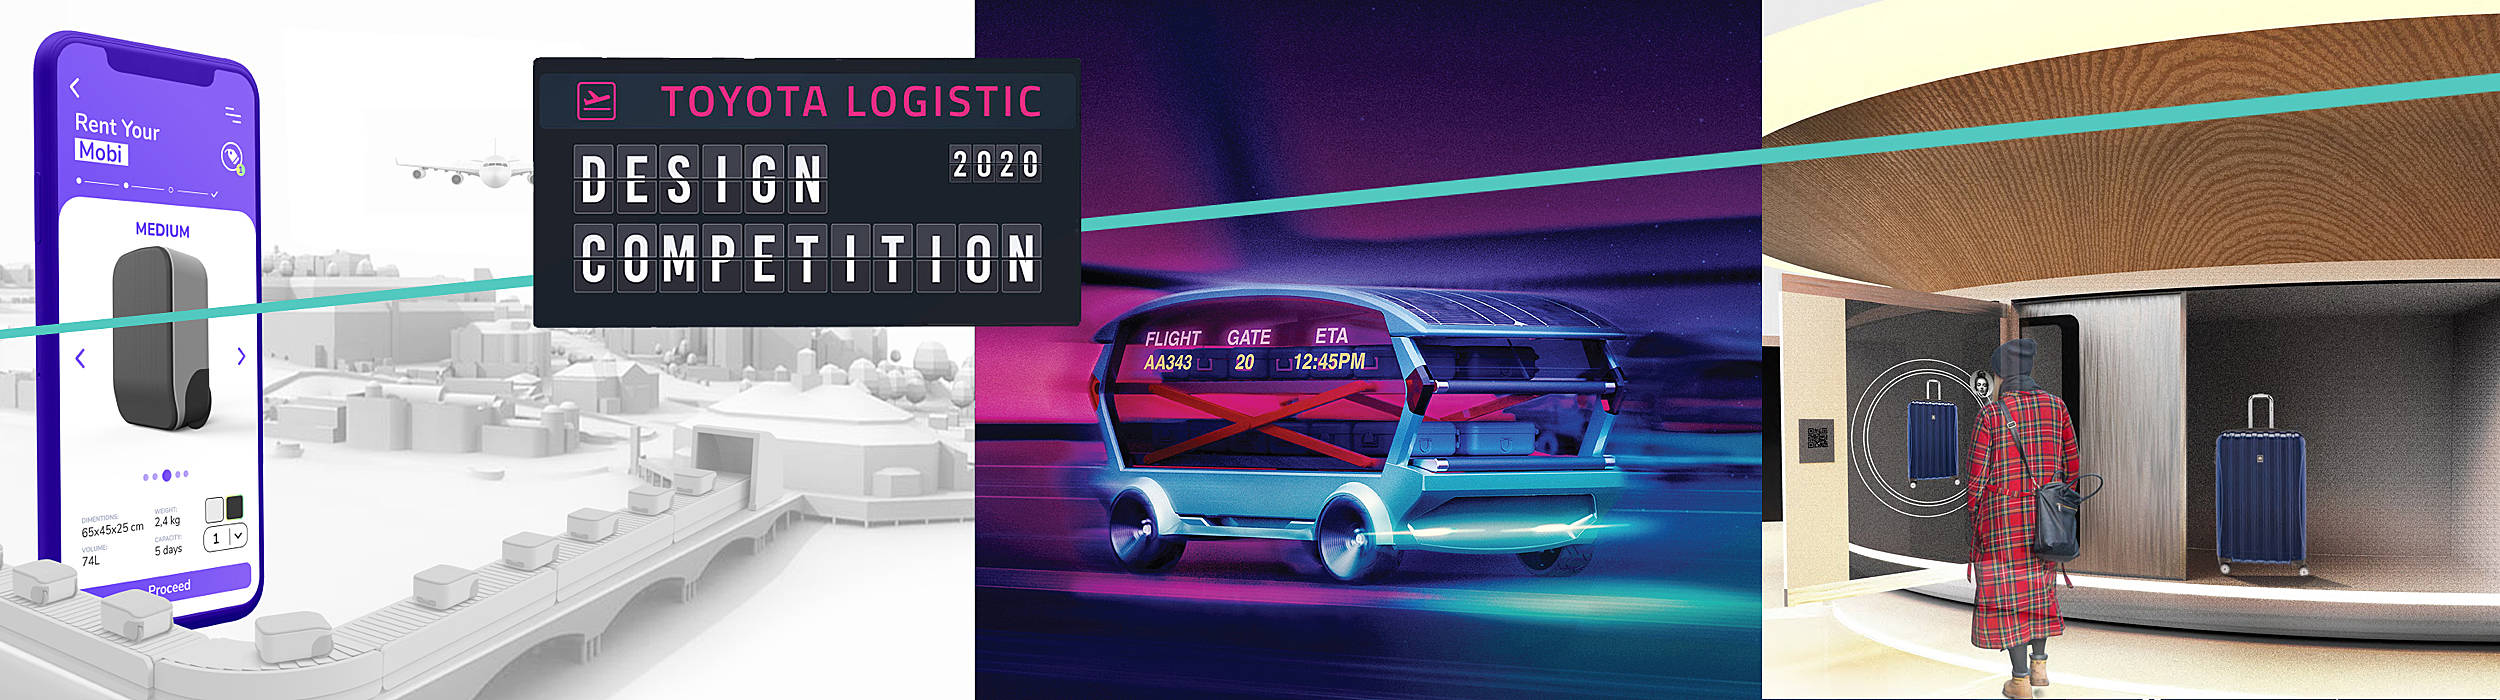 Banner Toyota Logistic Design Competition 2020